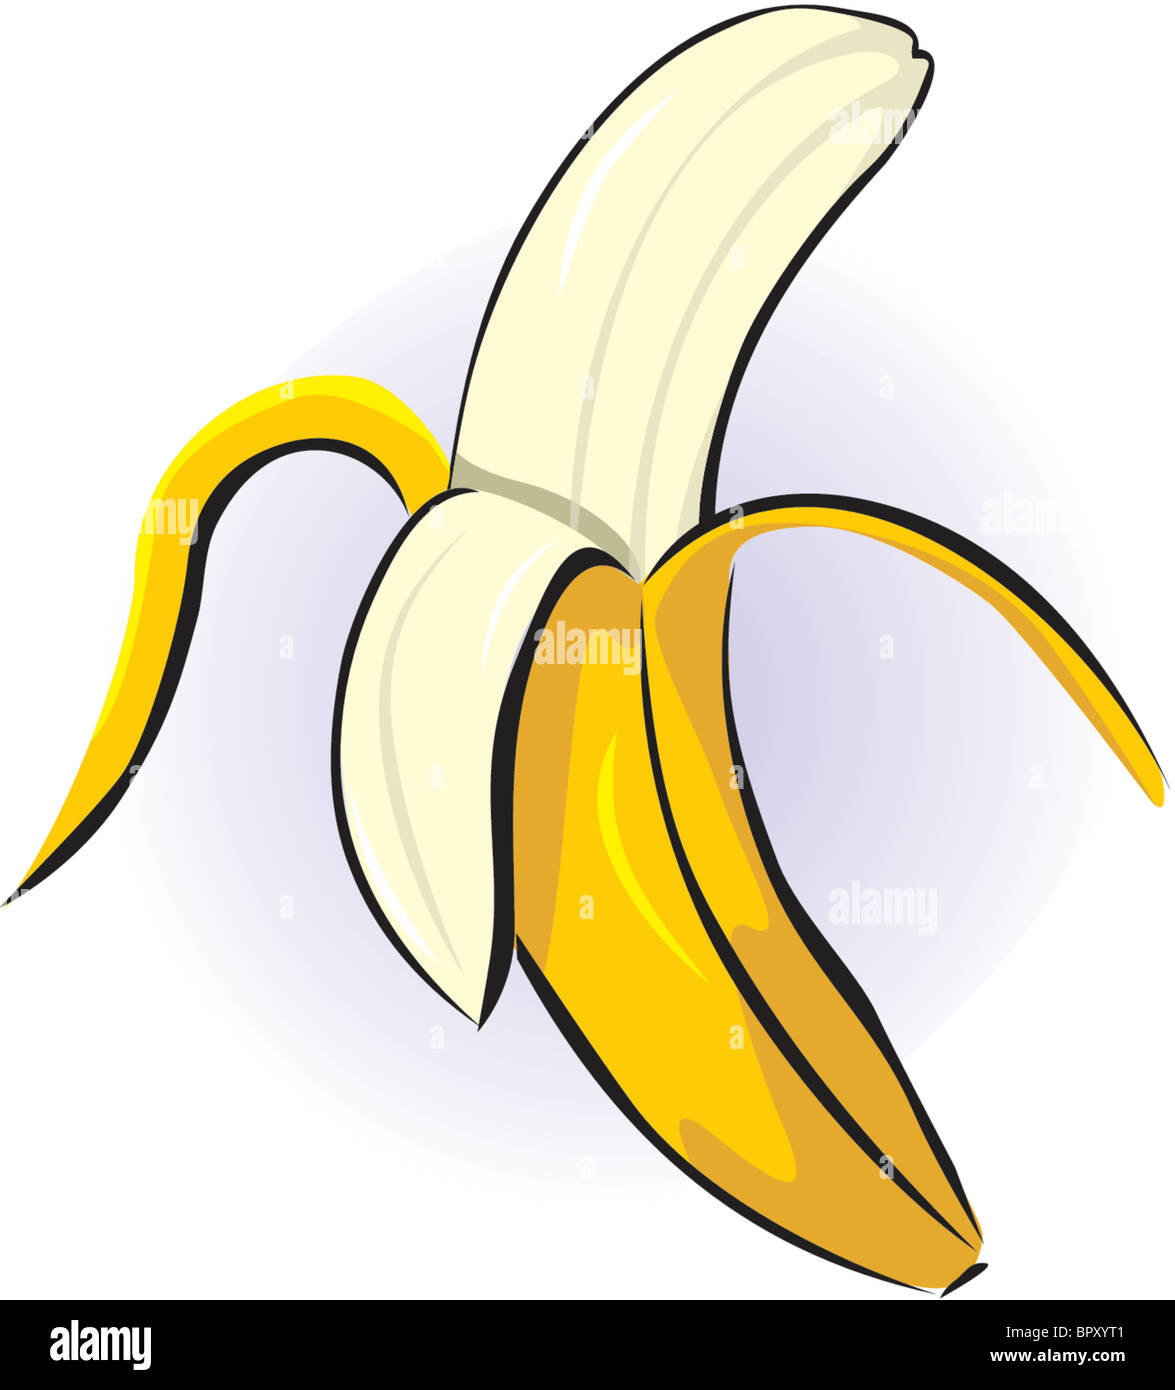 Line Drawing Banana : Drawing of a peeled banana stock photo alamy